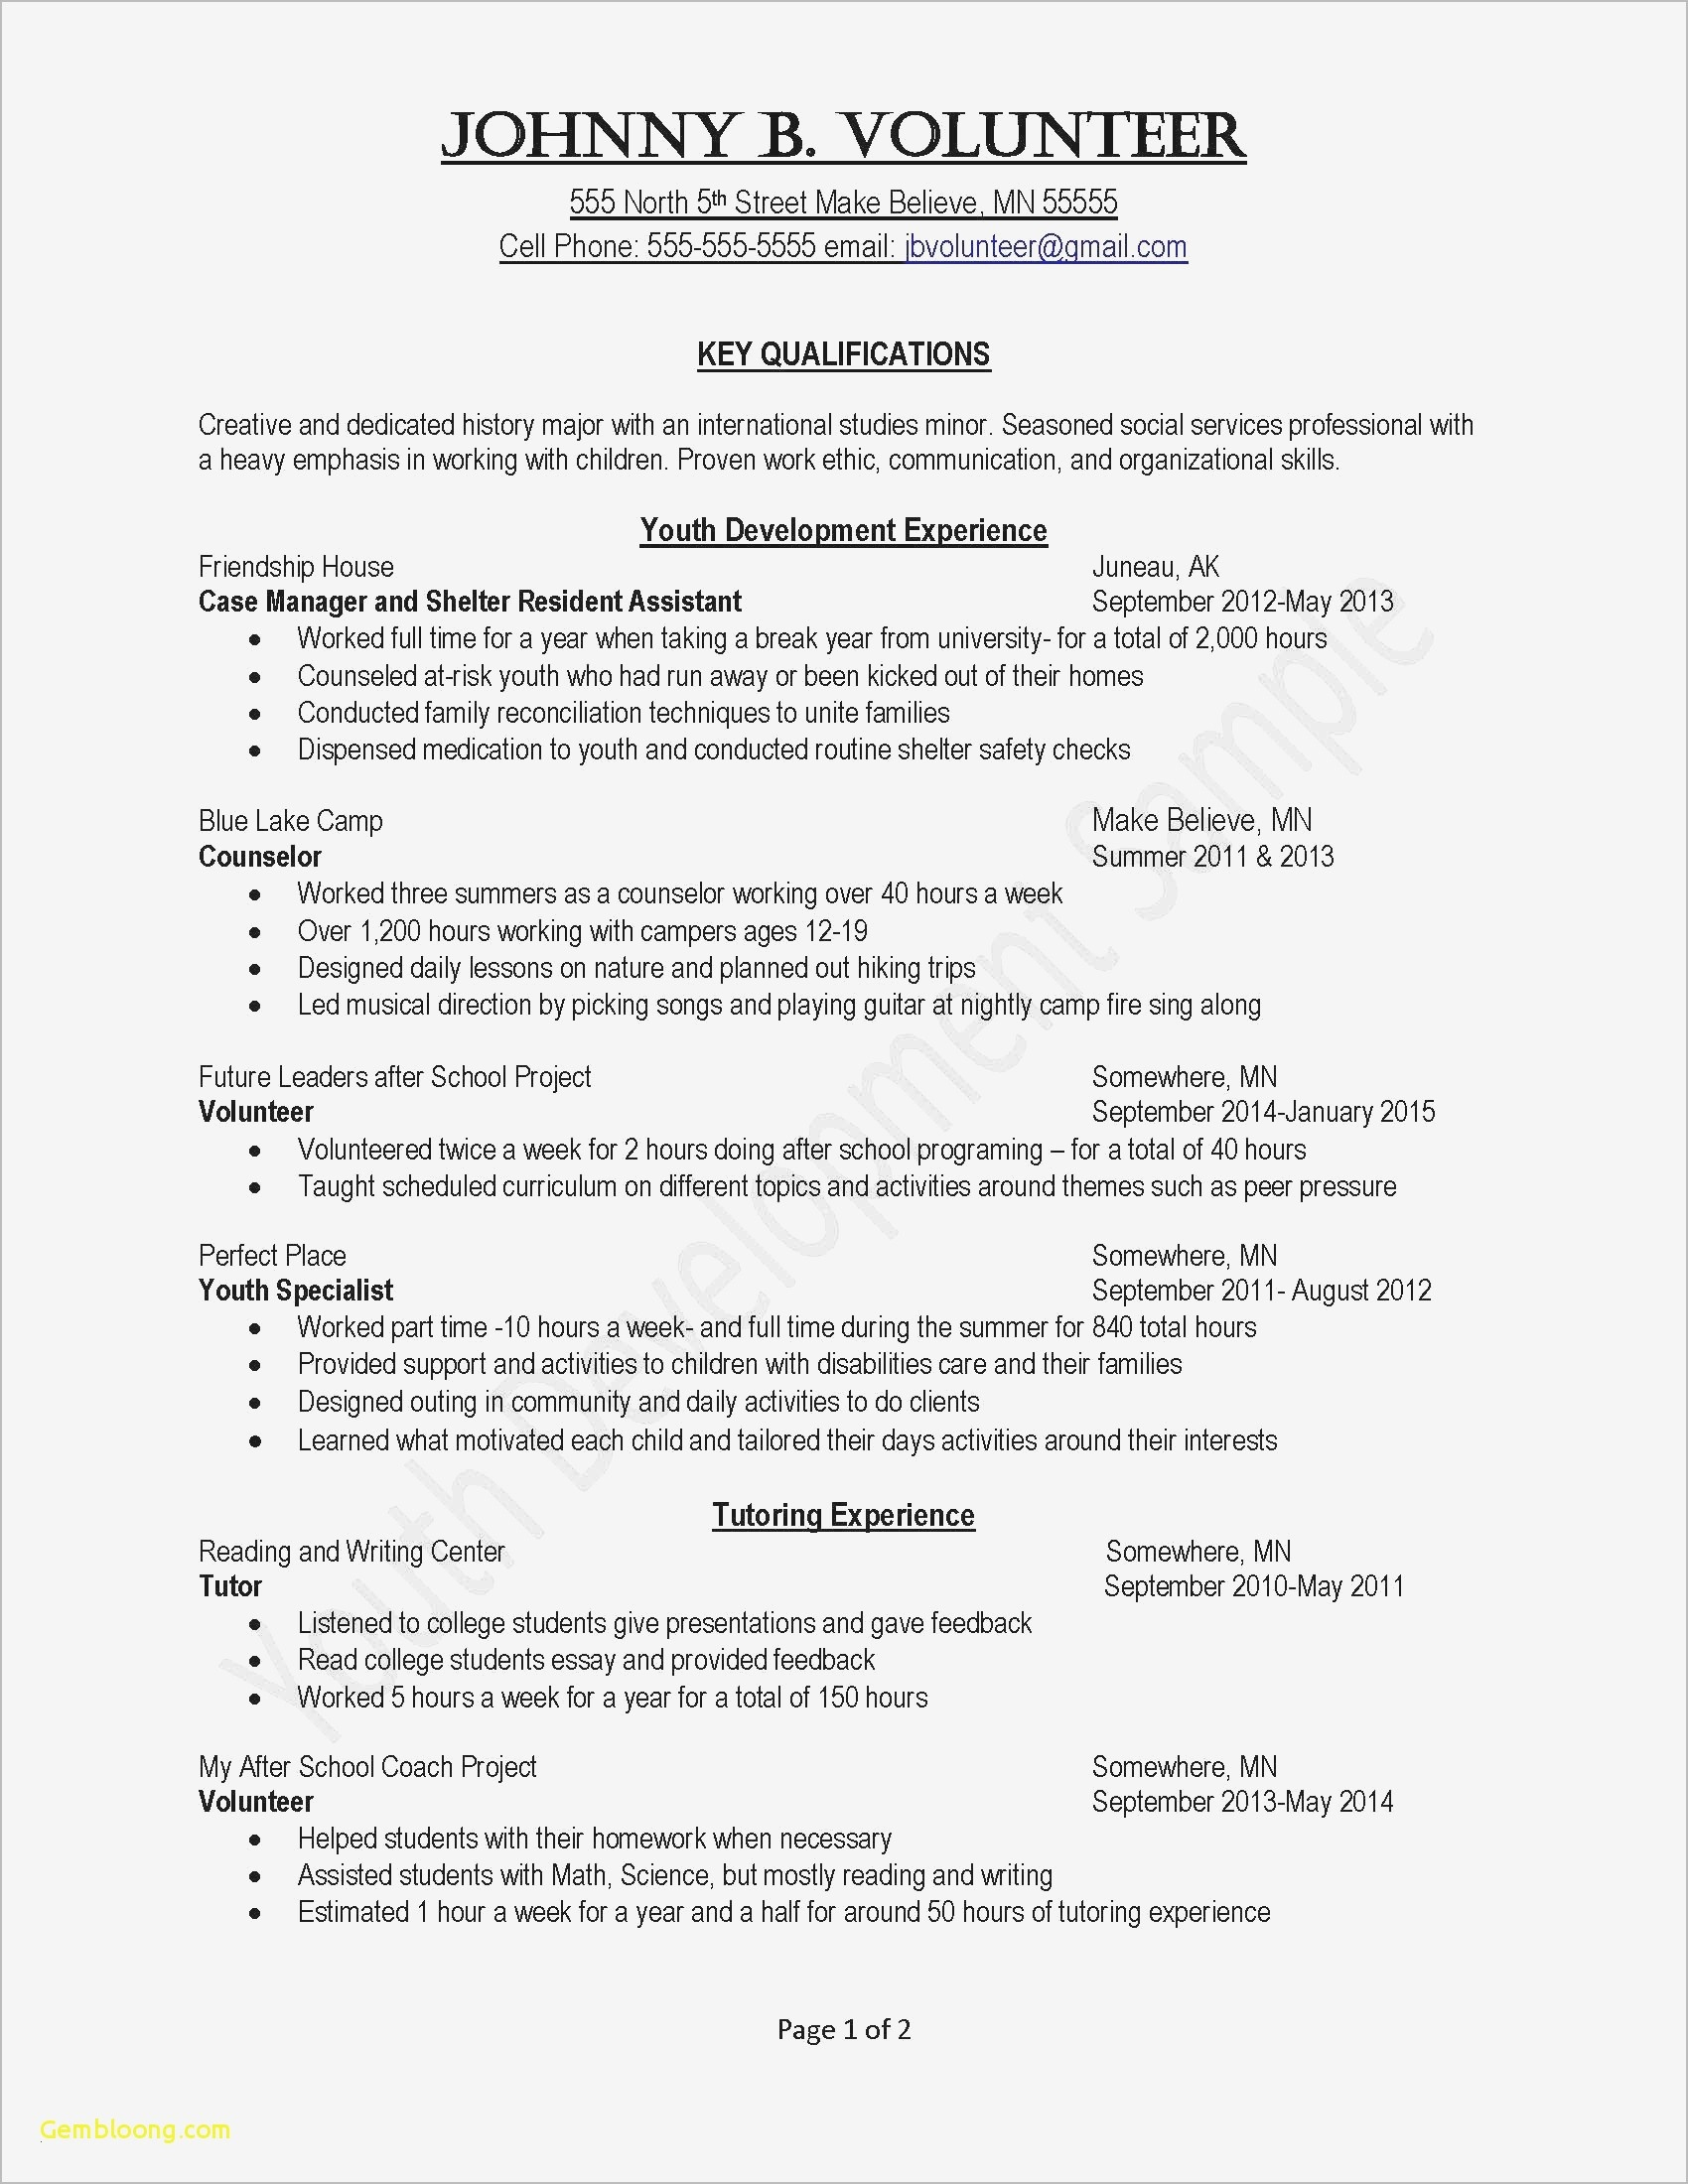 Basic Cover Letter Template Word - Simple Cover Letter Examples for Resume